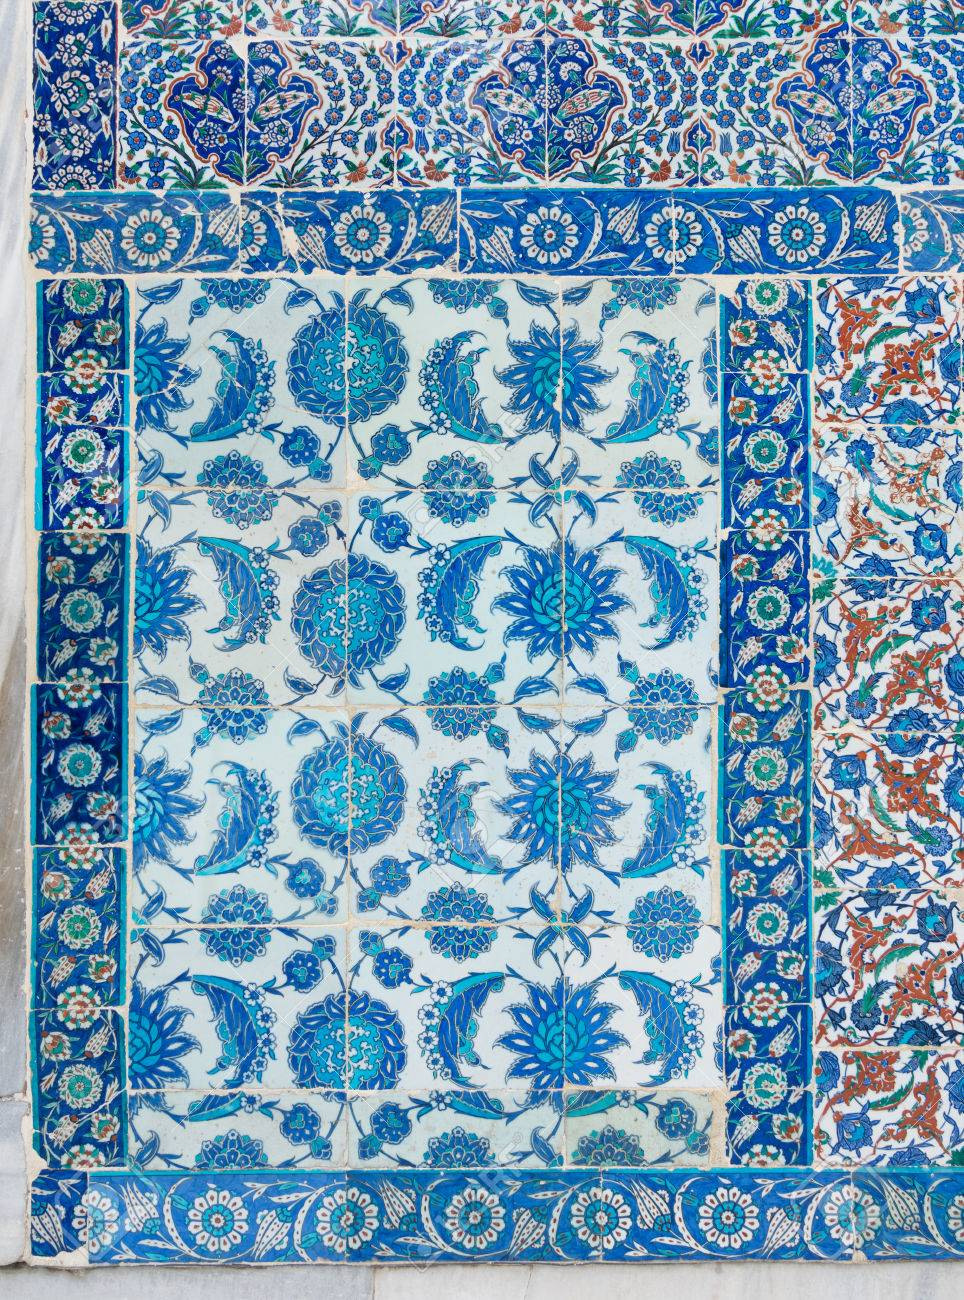 Old Ceramic Wall Tiles With Floral Blue Pattern In An Exterior ...